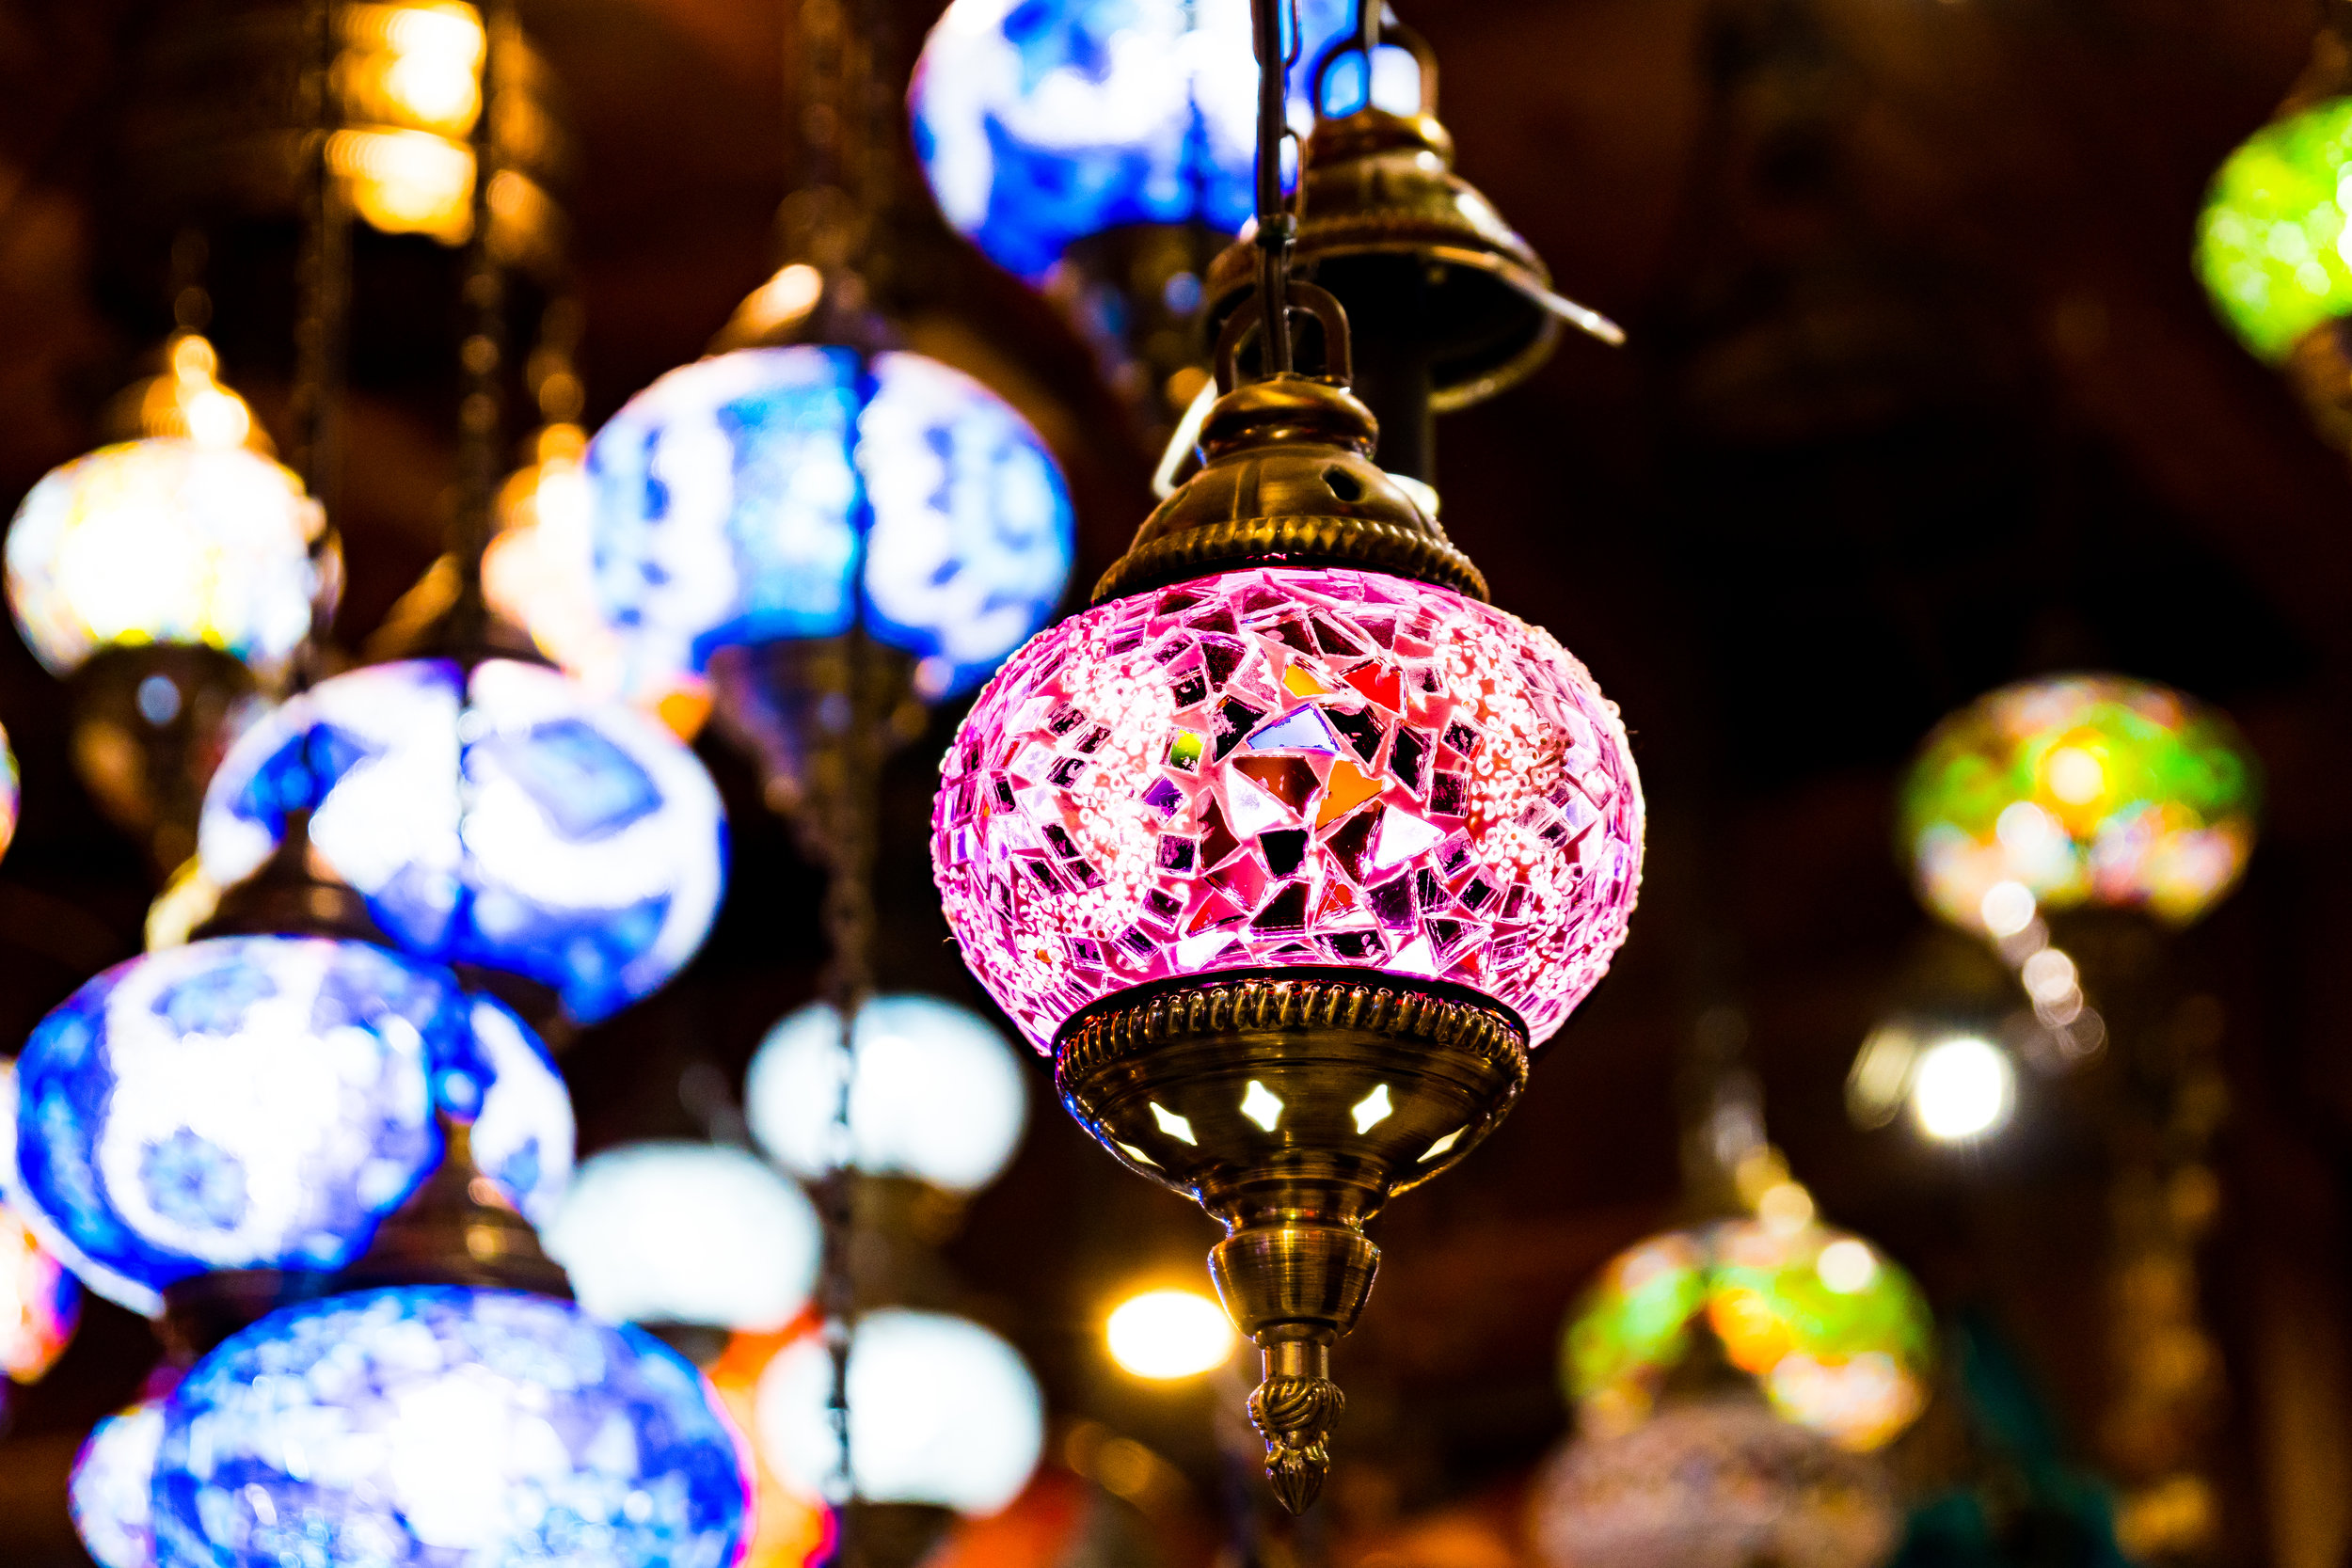 Ramadan Buffet - We can't wait until Ramadan is here already! Our premier Mediterranean Iftar buffet in Anaheim is filled with appetizers, main courses, desserts and drinks that you can't even imagine.